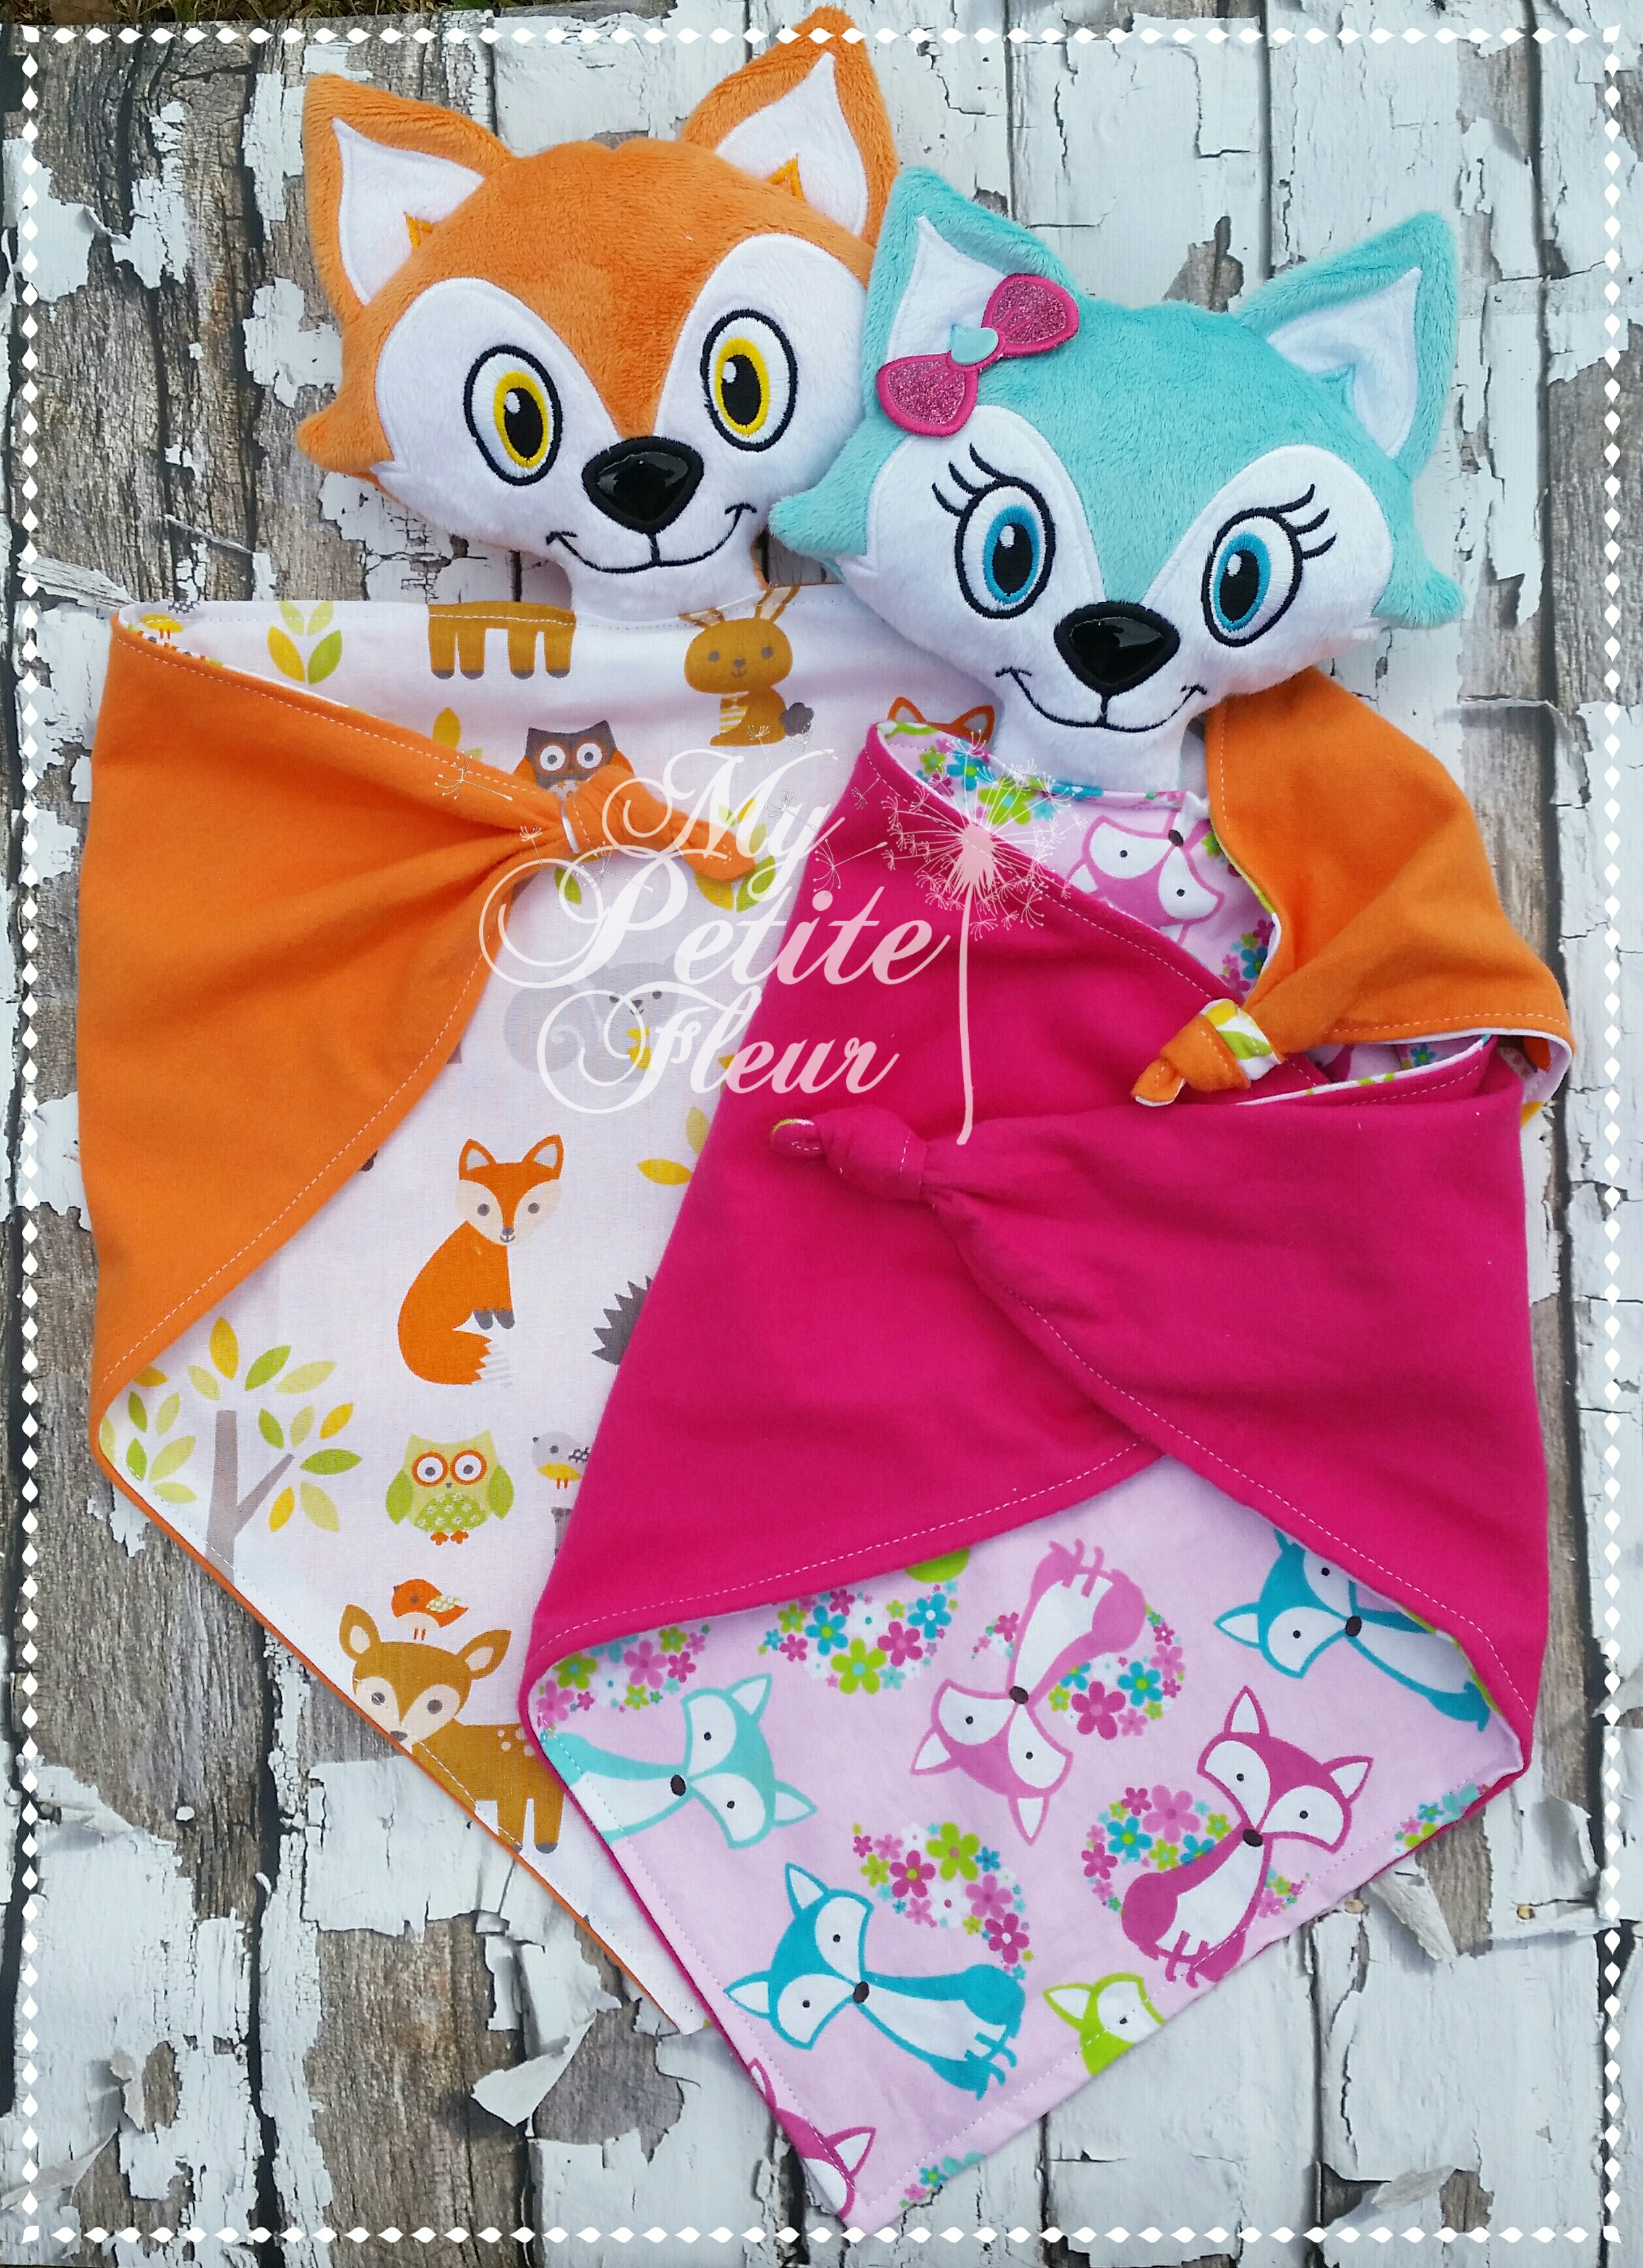 Boy Amp Girl Fox Lovey My Petite Fleur Designs